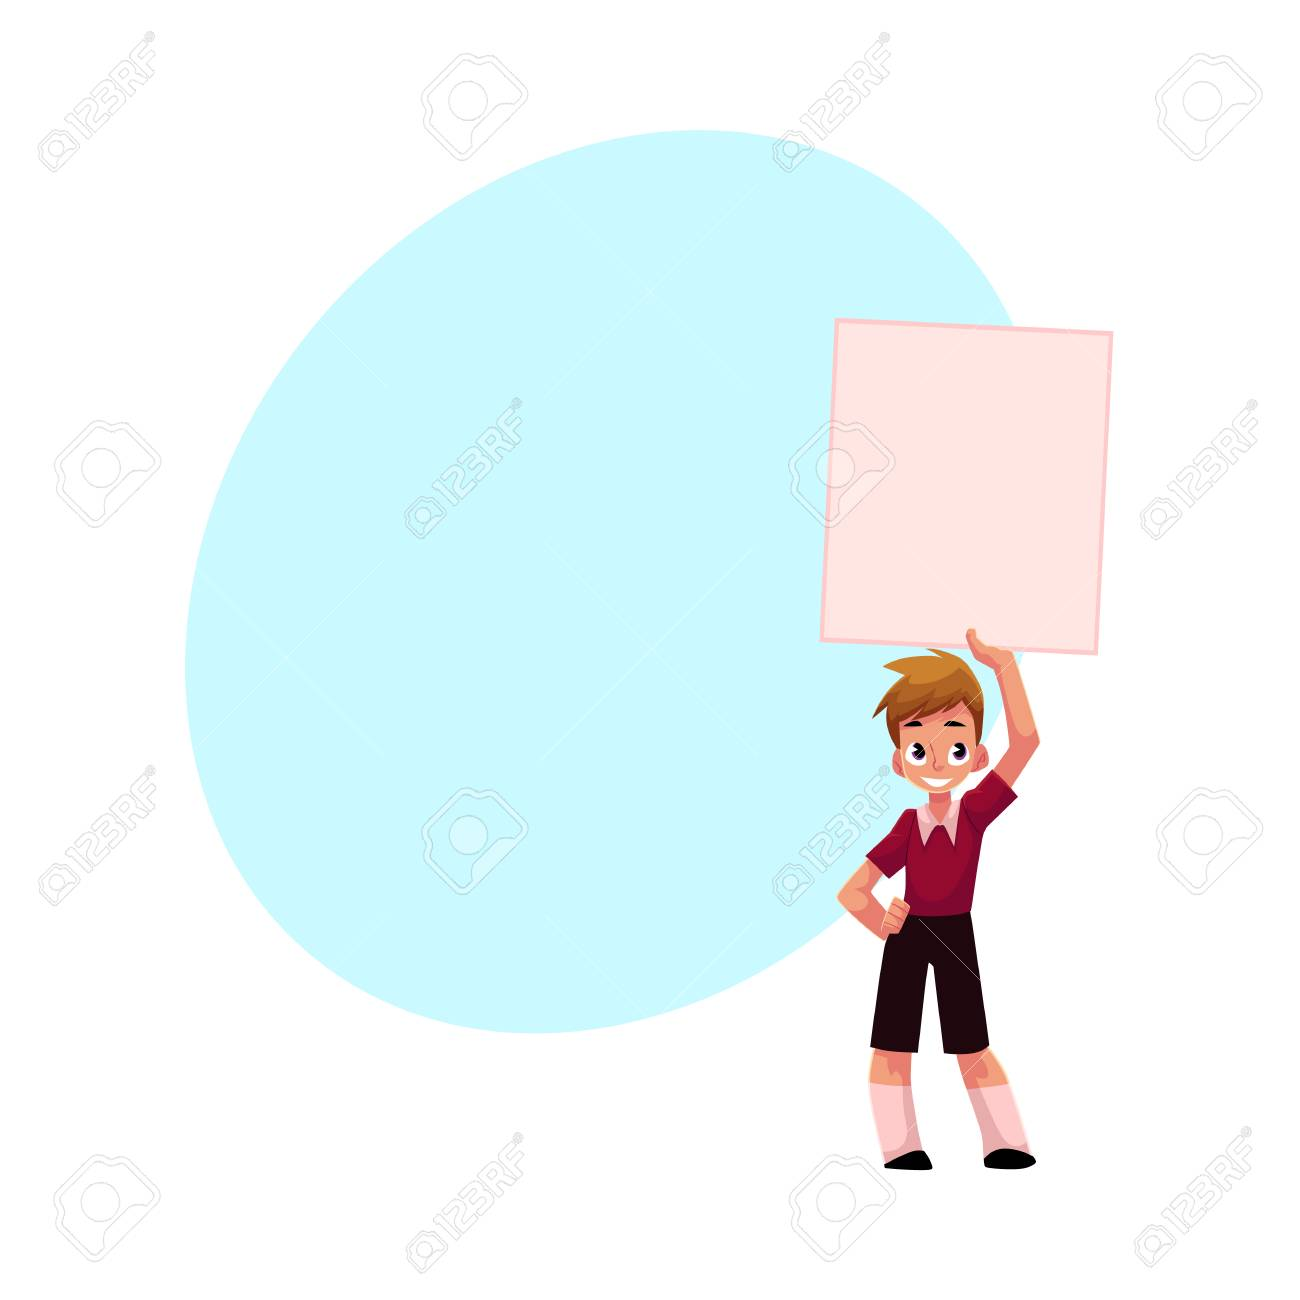 little boy child kid holding blank empty poster board over